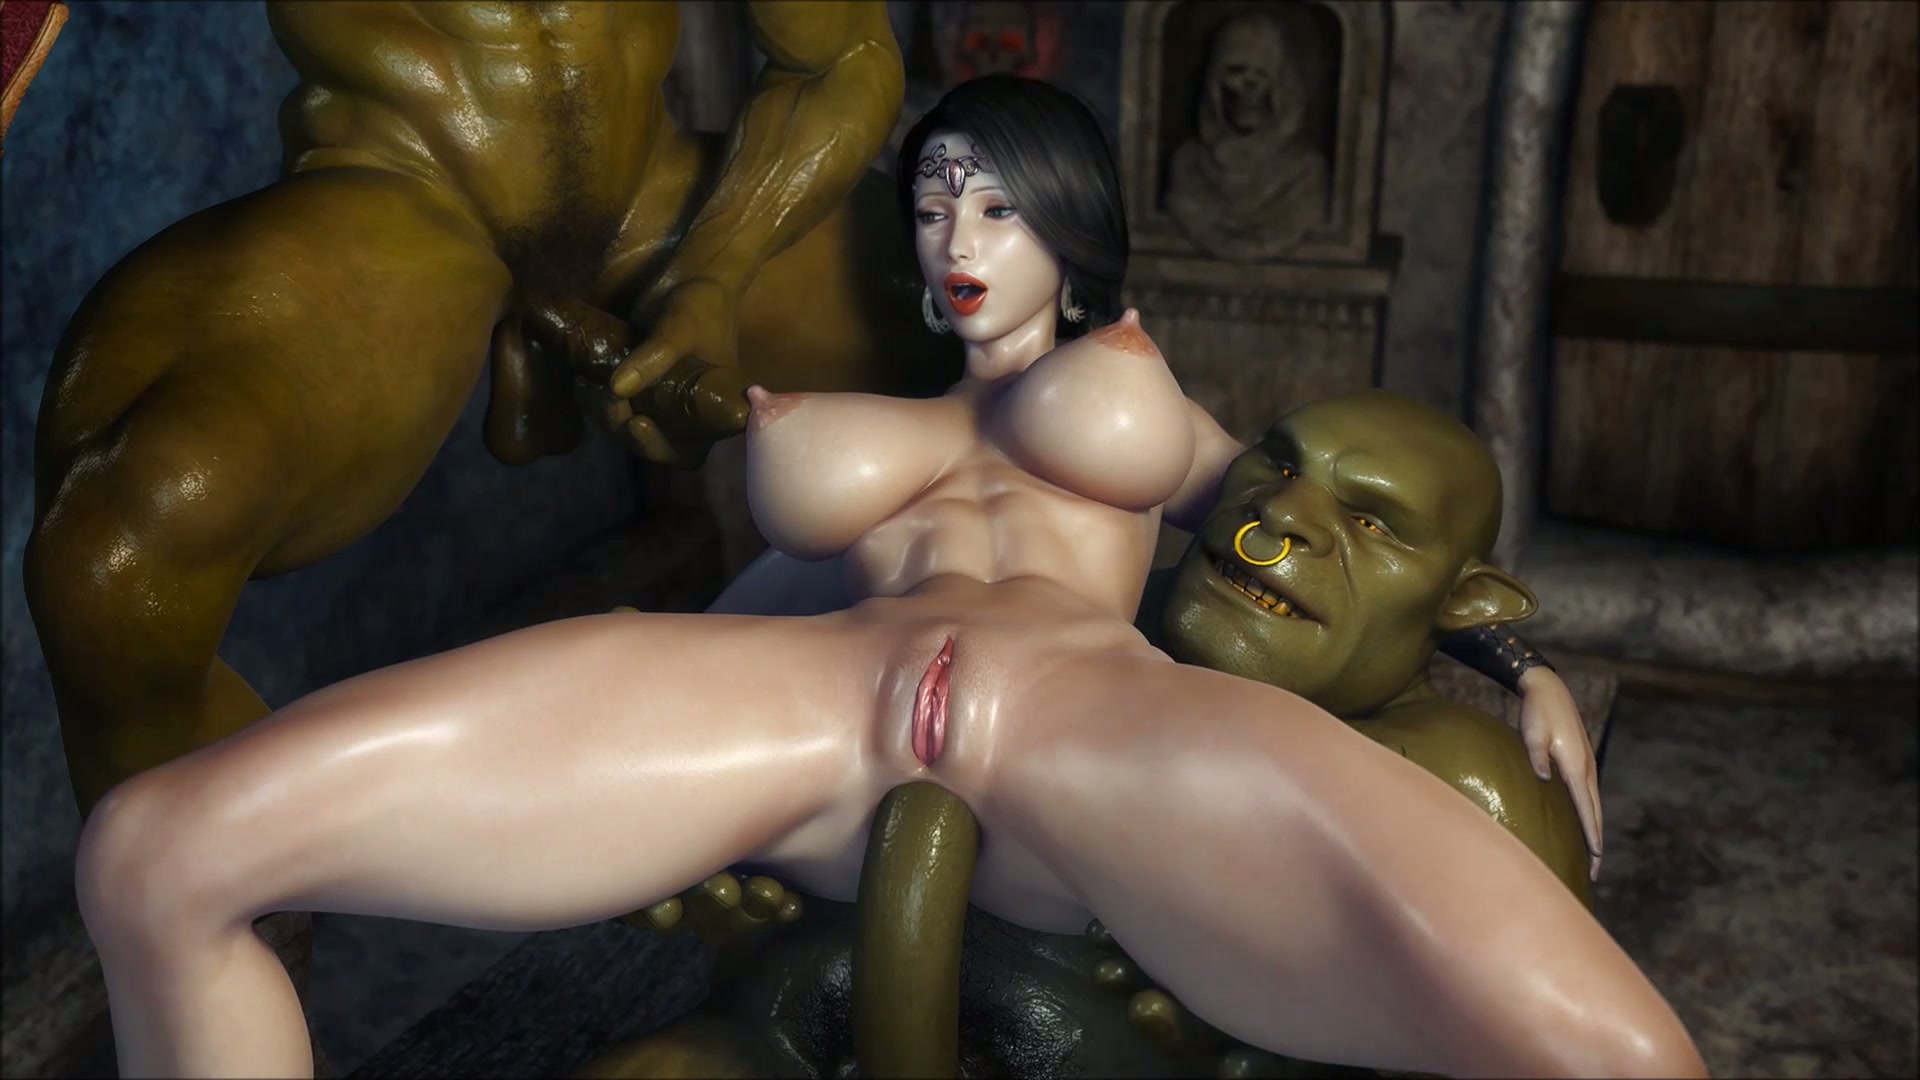 3d monster girls xxx download exploited pics